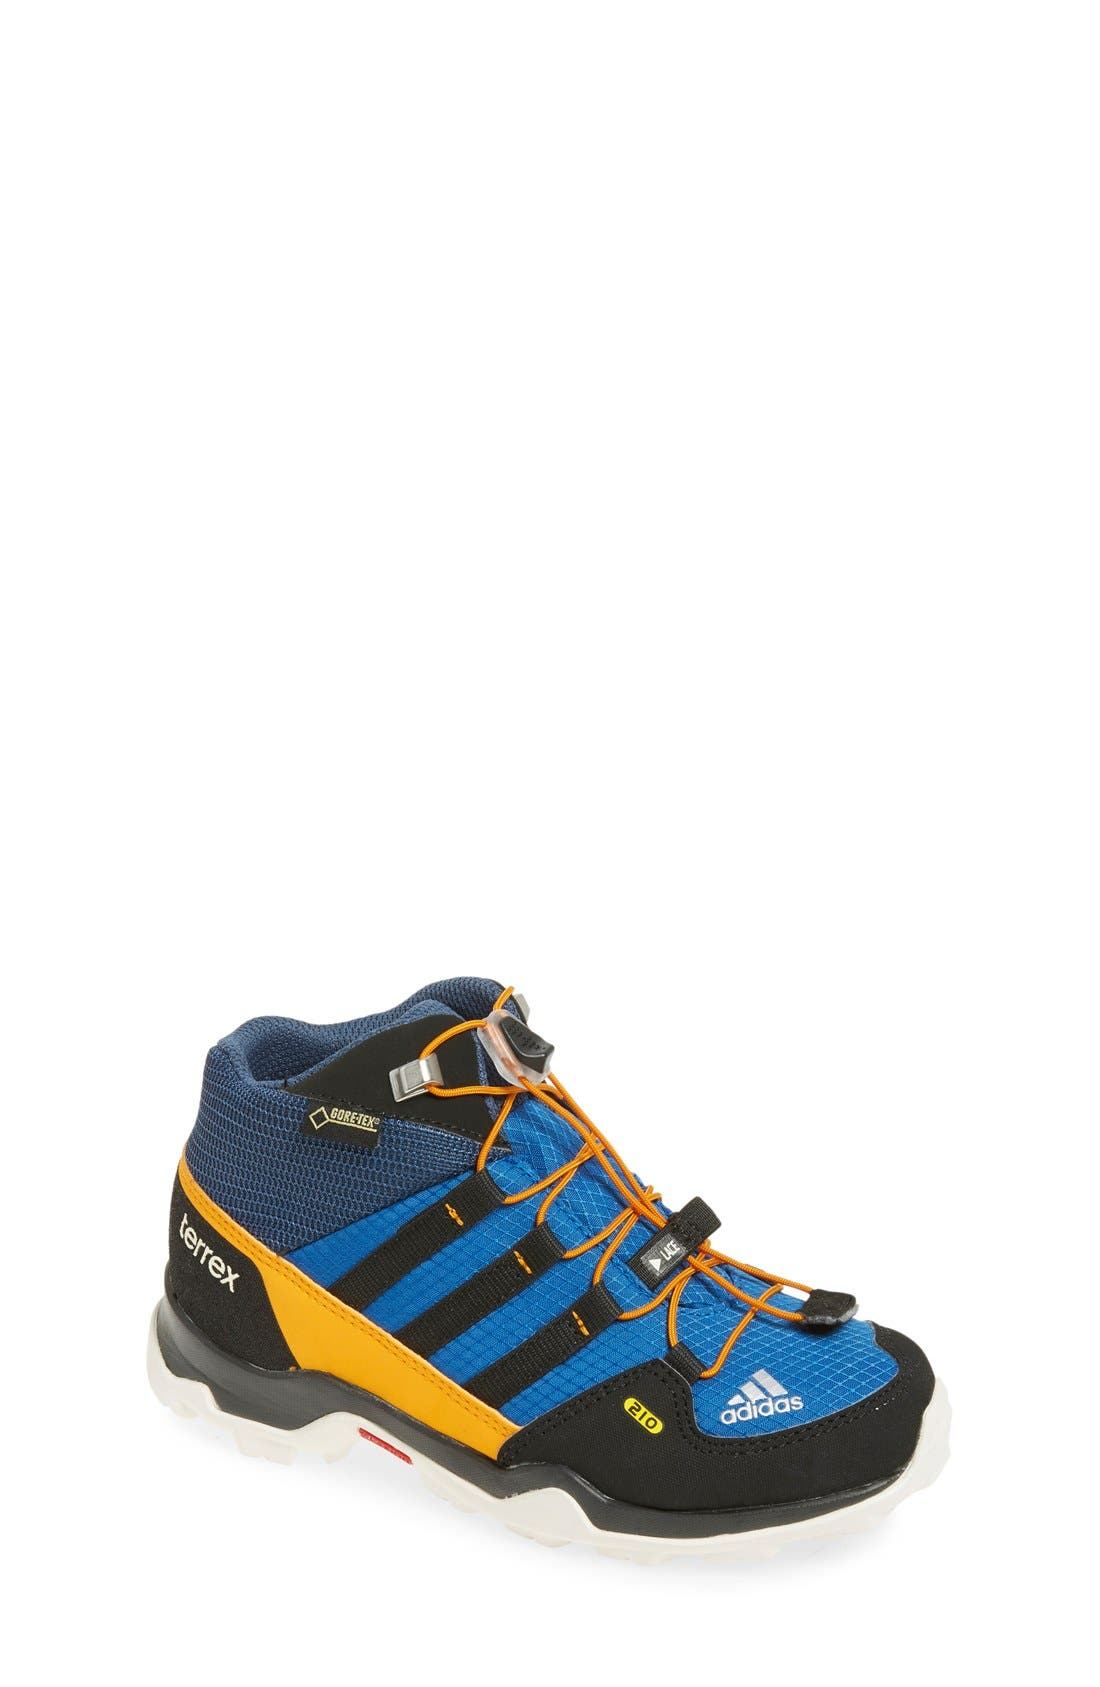 Main Image - adidas 'Terrex Mid Gore-Tex' Hiking Shoe (Toddler, Little Kid & Big Kid)